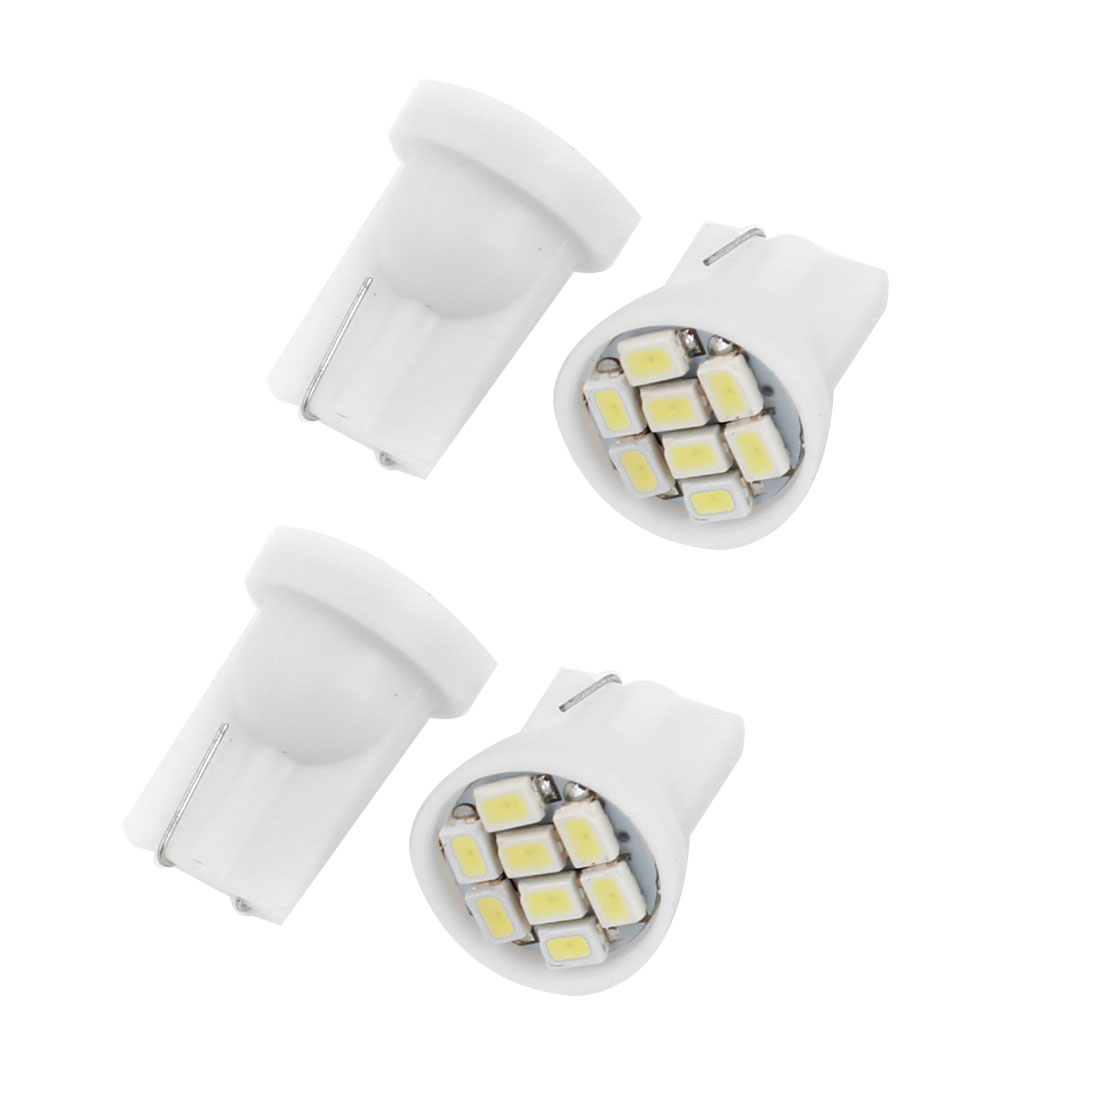 4 x T10 White 8 LED 1206 SMD Dashboard Signal Light Lamp Bulb for Car